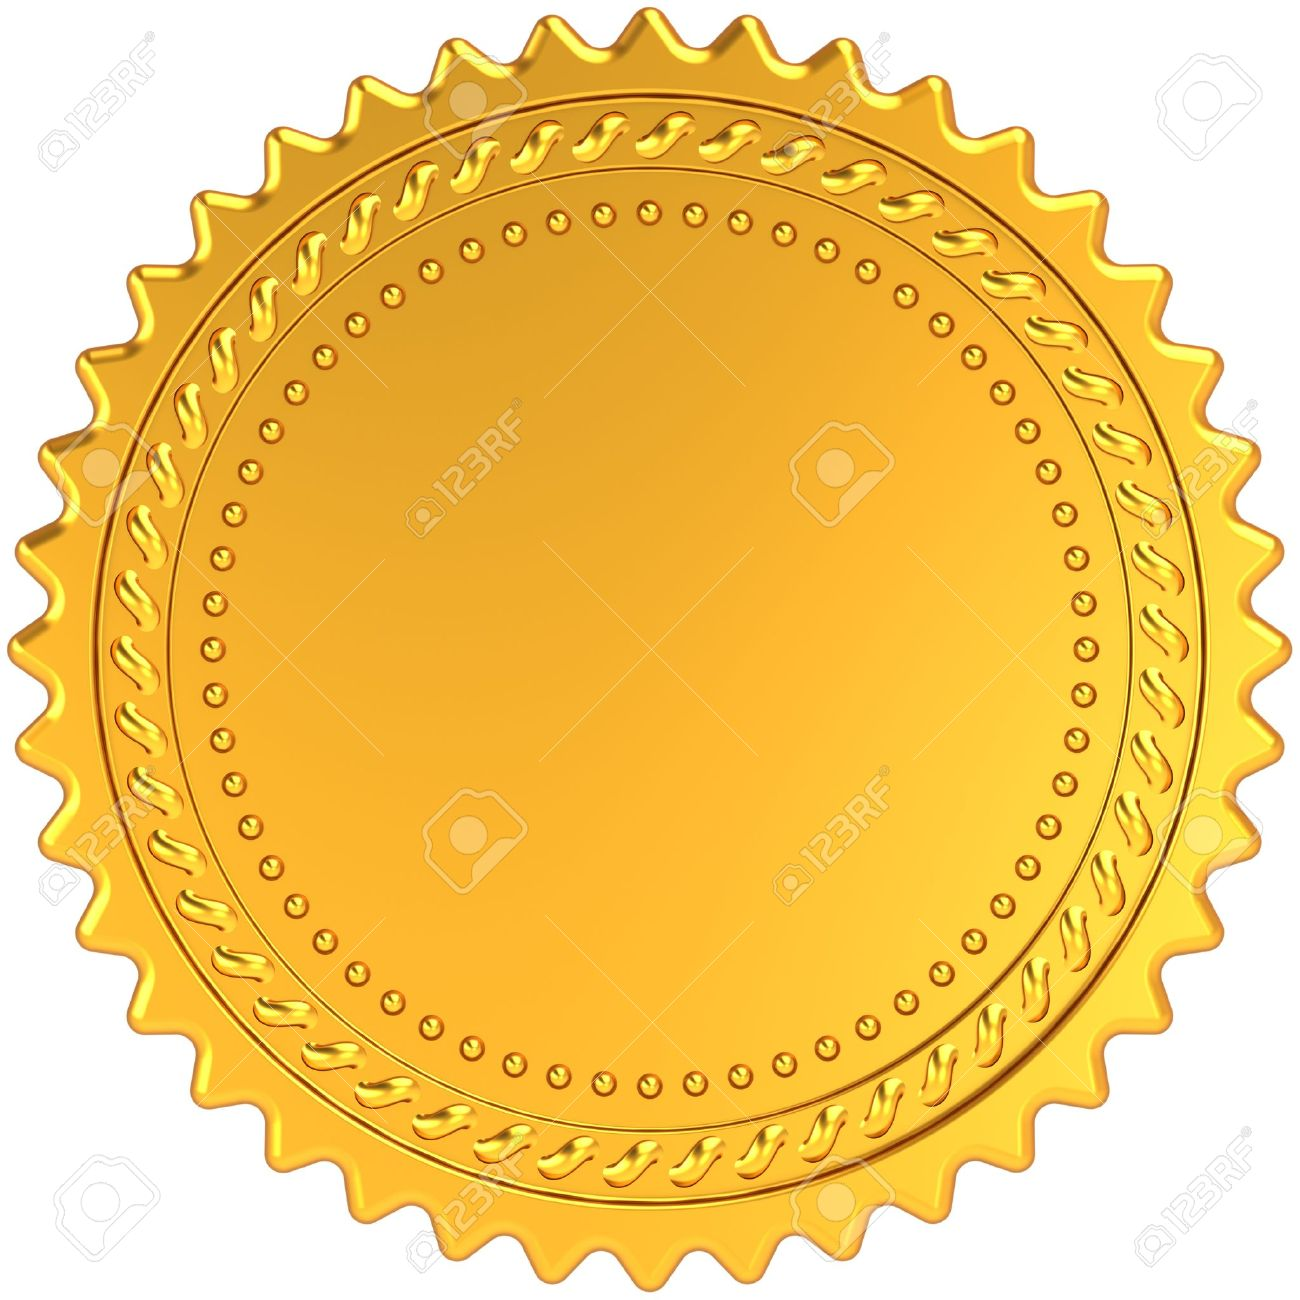 Golden Award Medal Blank Seal. Luxury Champion Badge Label